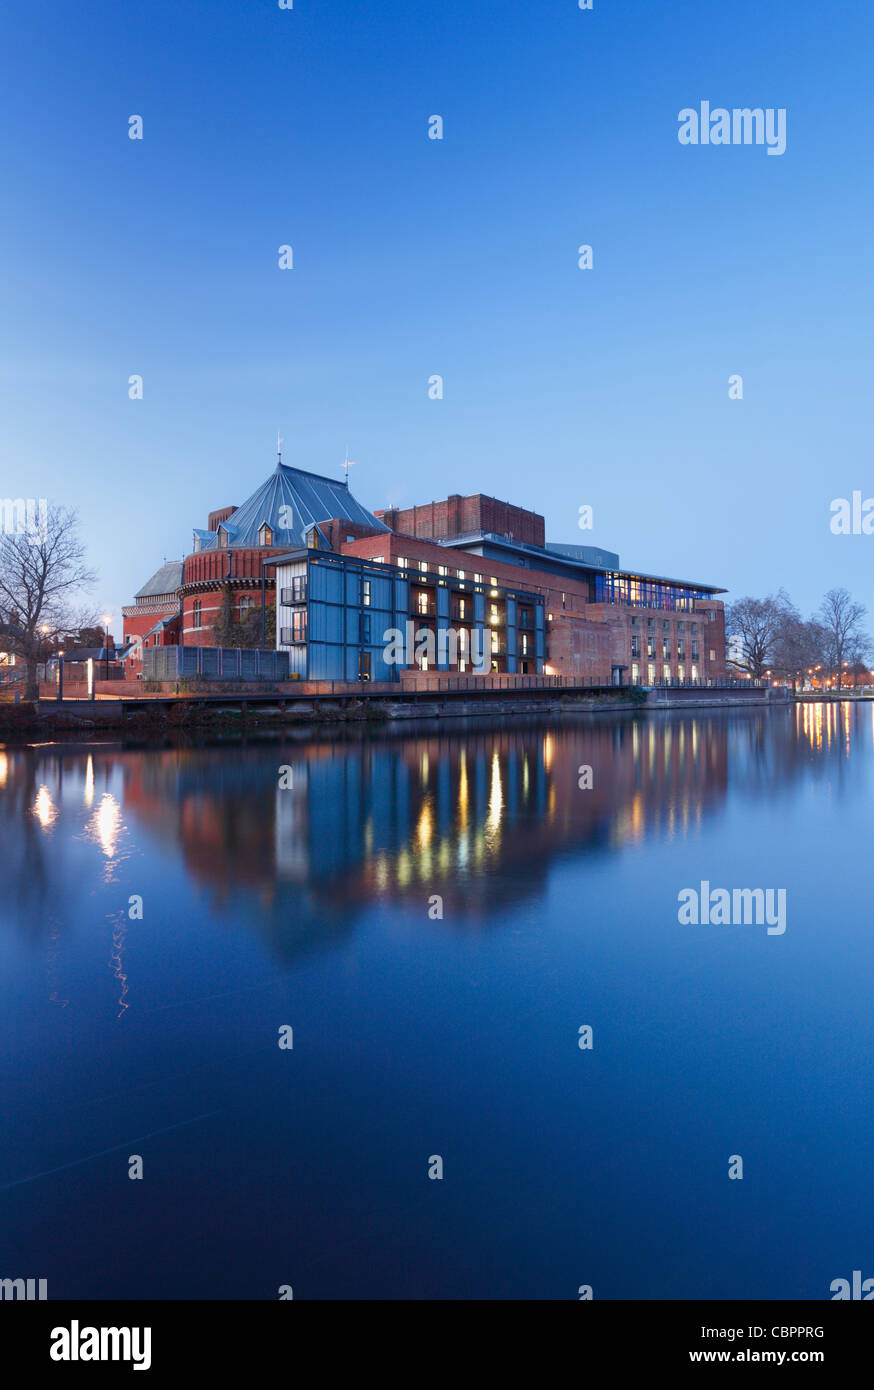 Royal Shakespeare Theatre on the River Avon at Dusk. Stratford-upon-Avon. Warwickshire. England. UK. - Stock Image